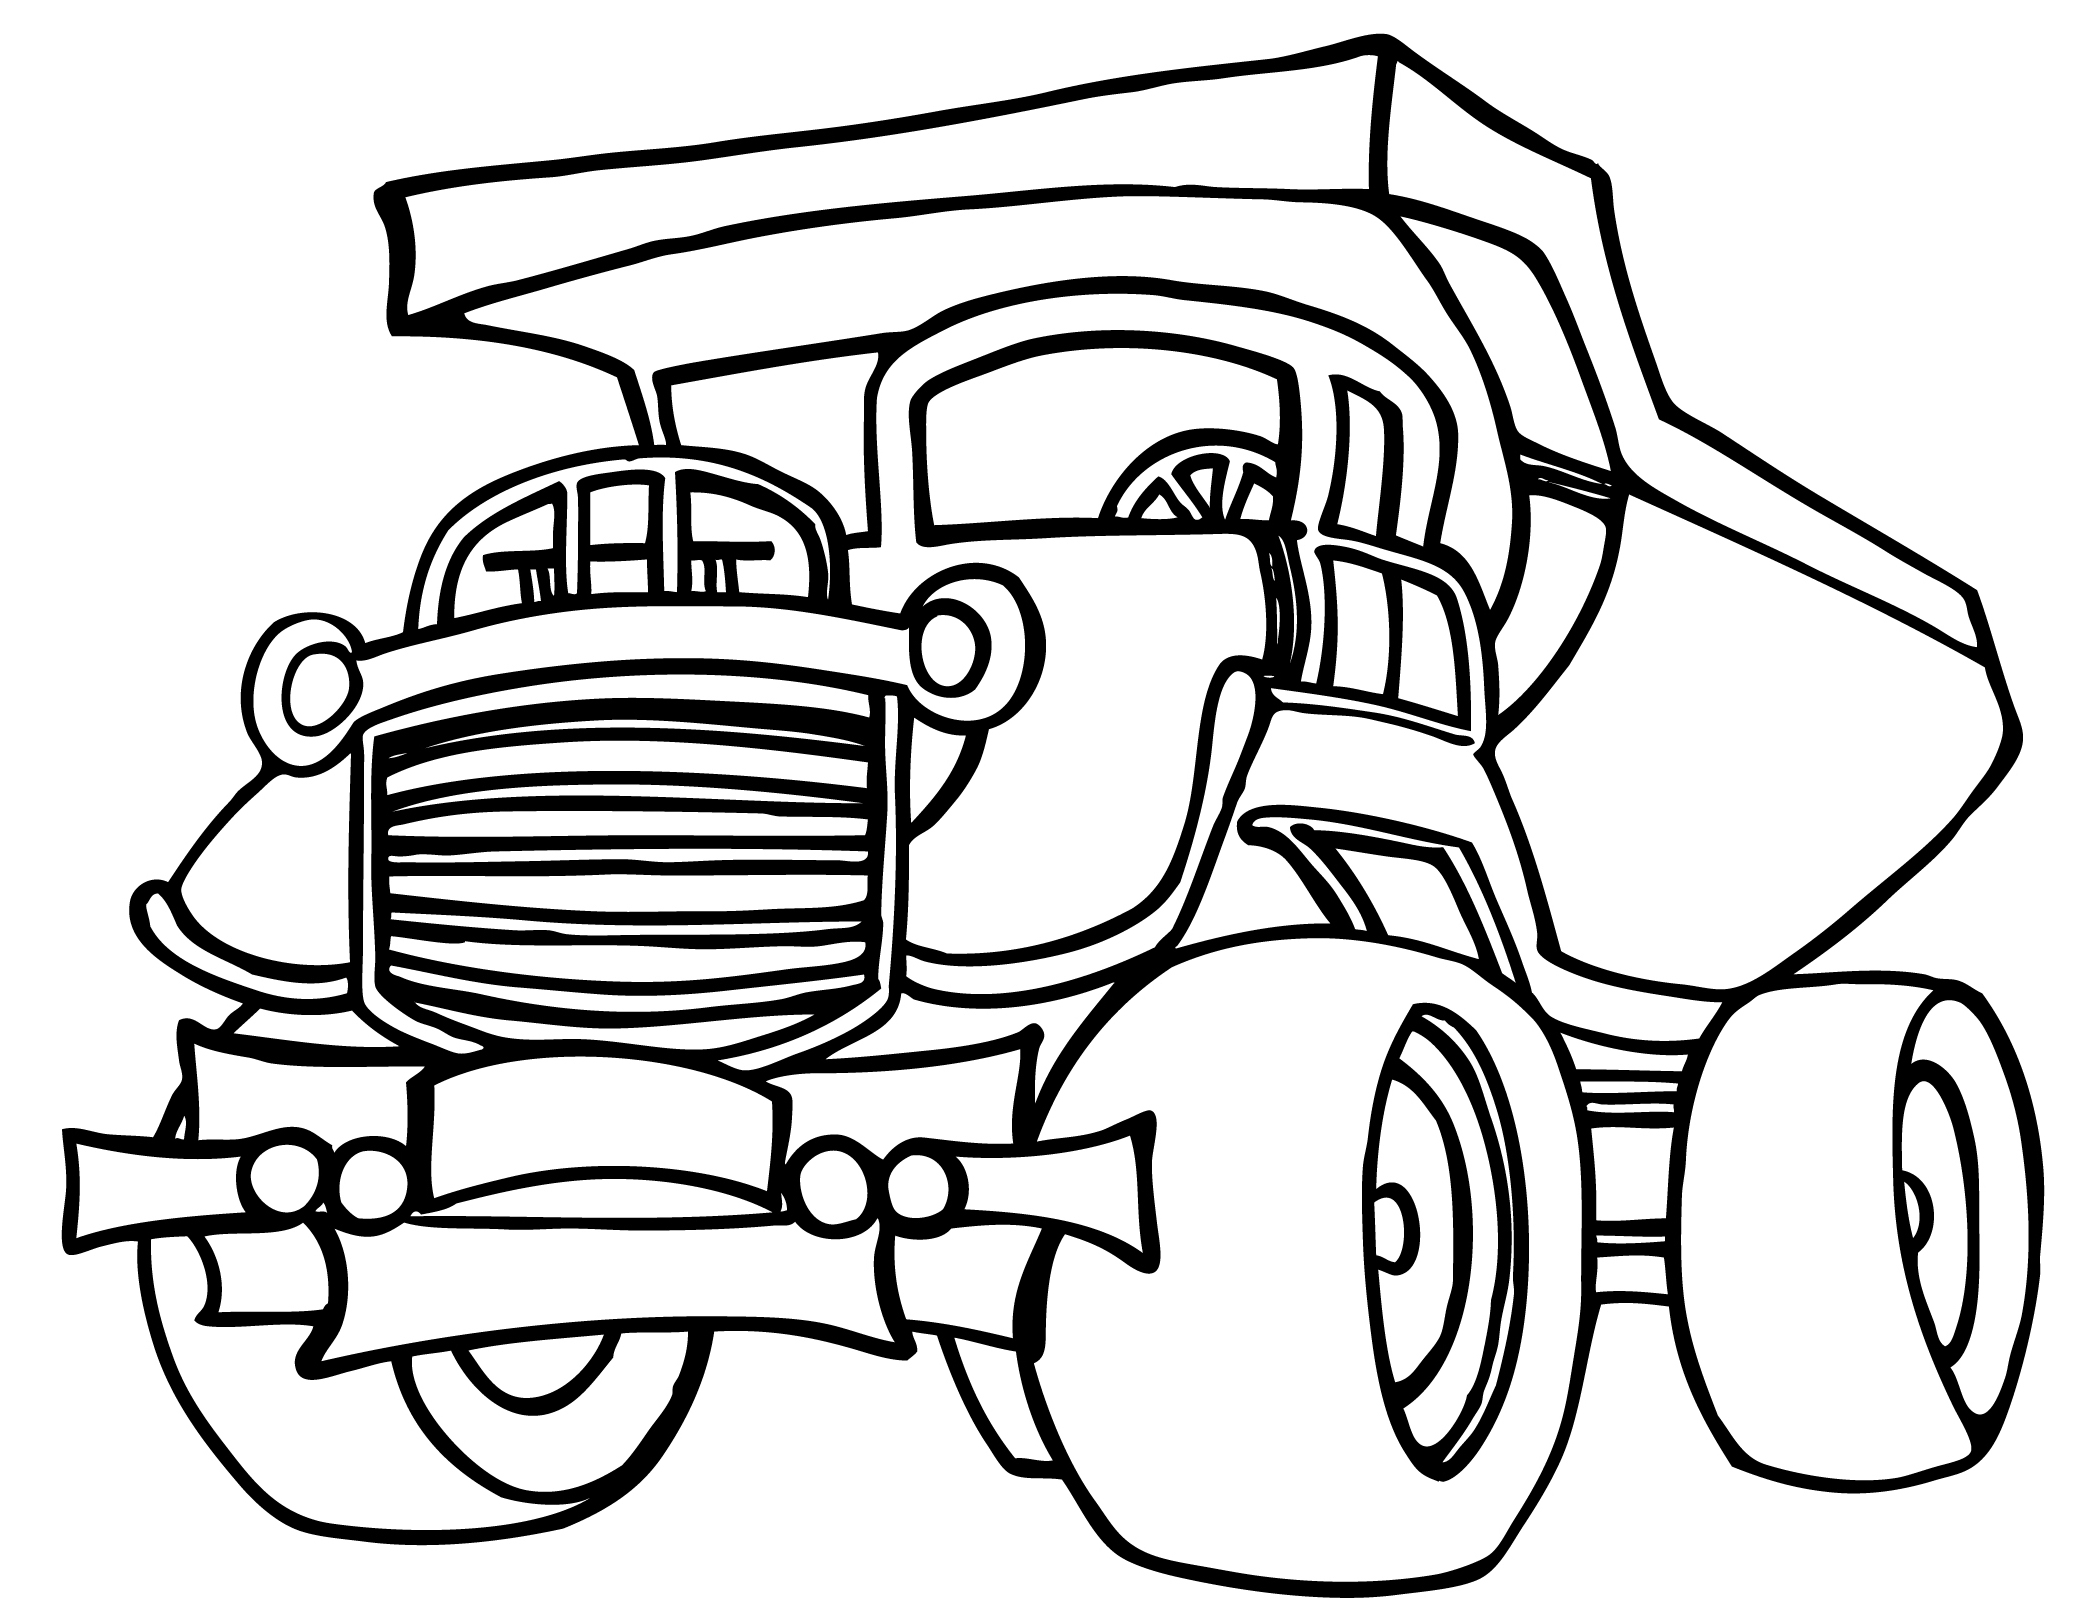 truck coloring pages - photo#32